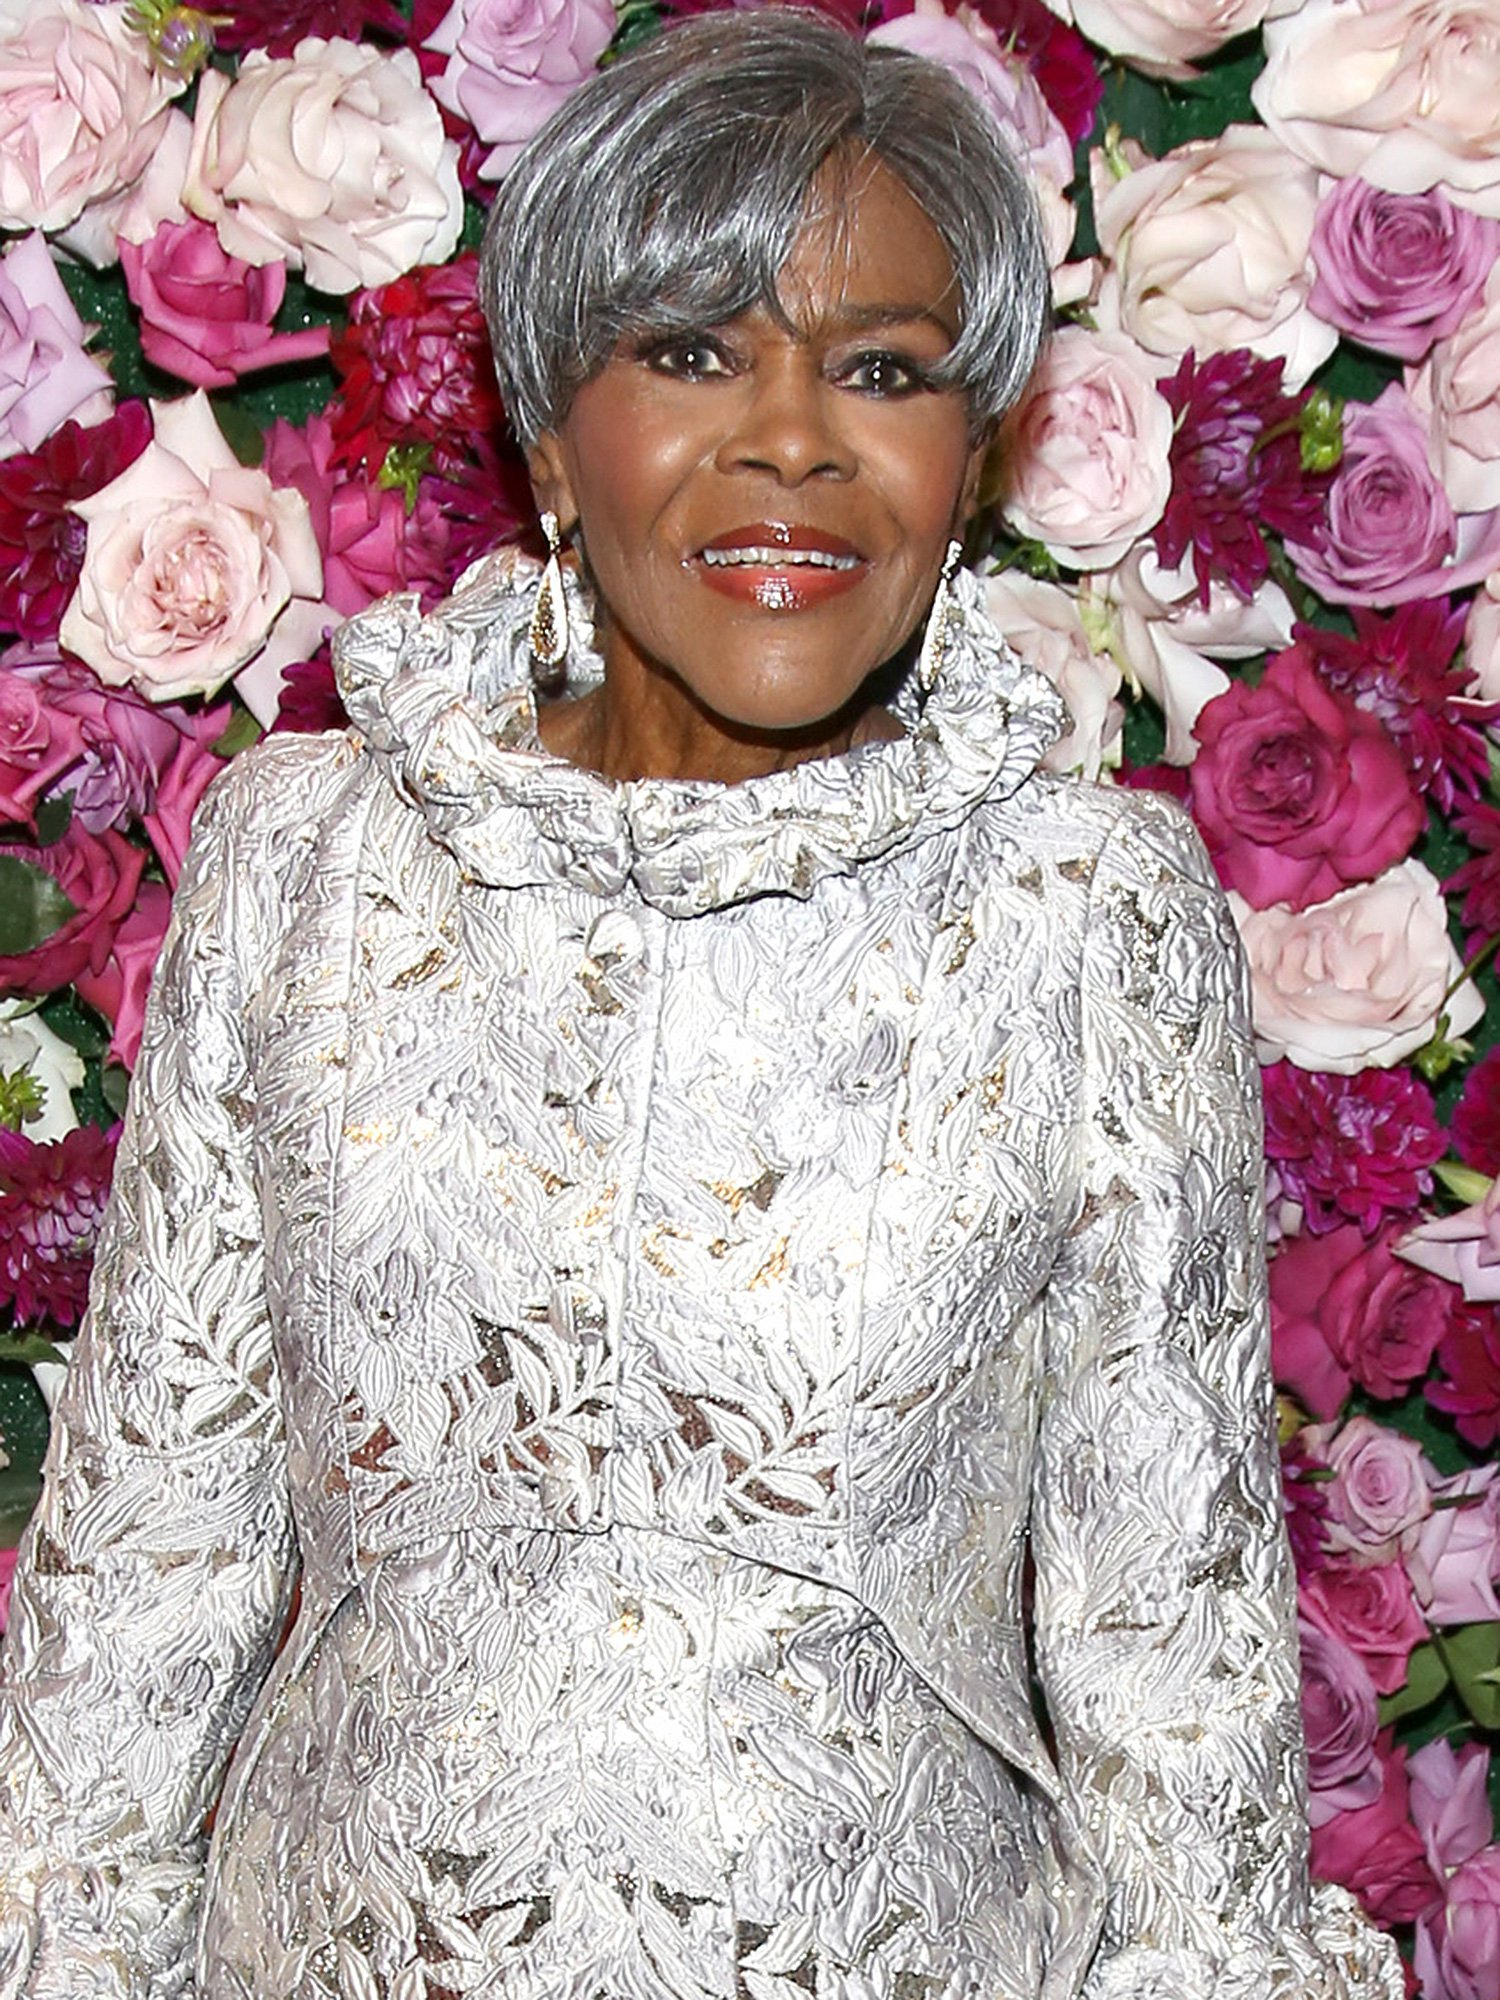 Cicely Tyson, 93, Makes History as First Black Woman to Receive an Honorary Oscar